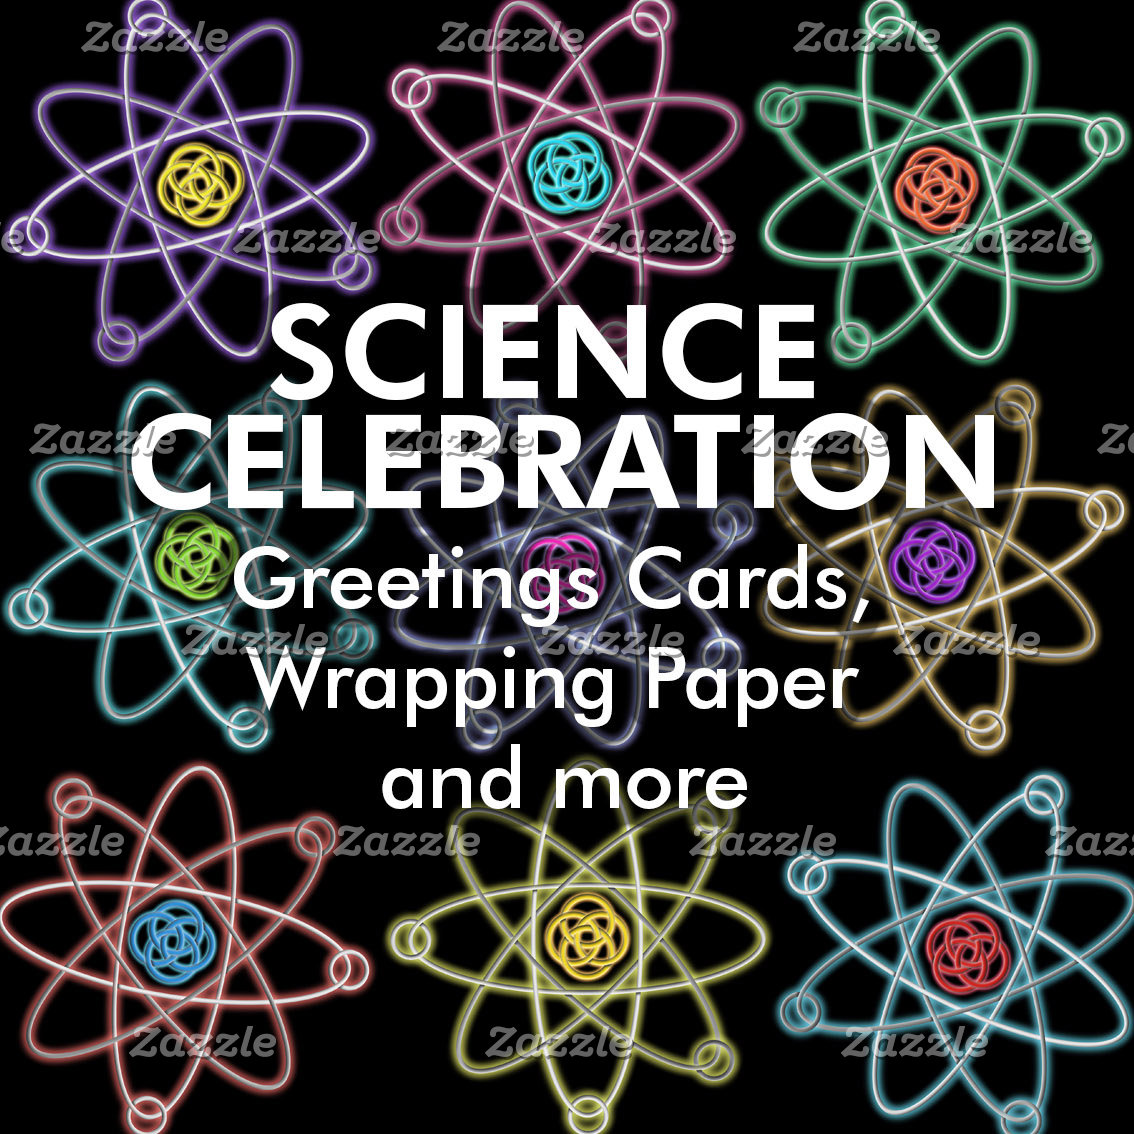 Greetings Cards & Wrapping Paper